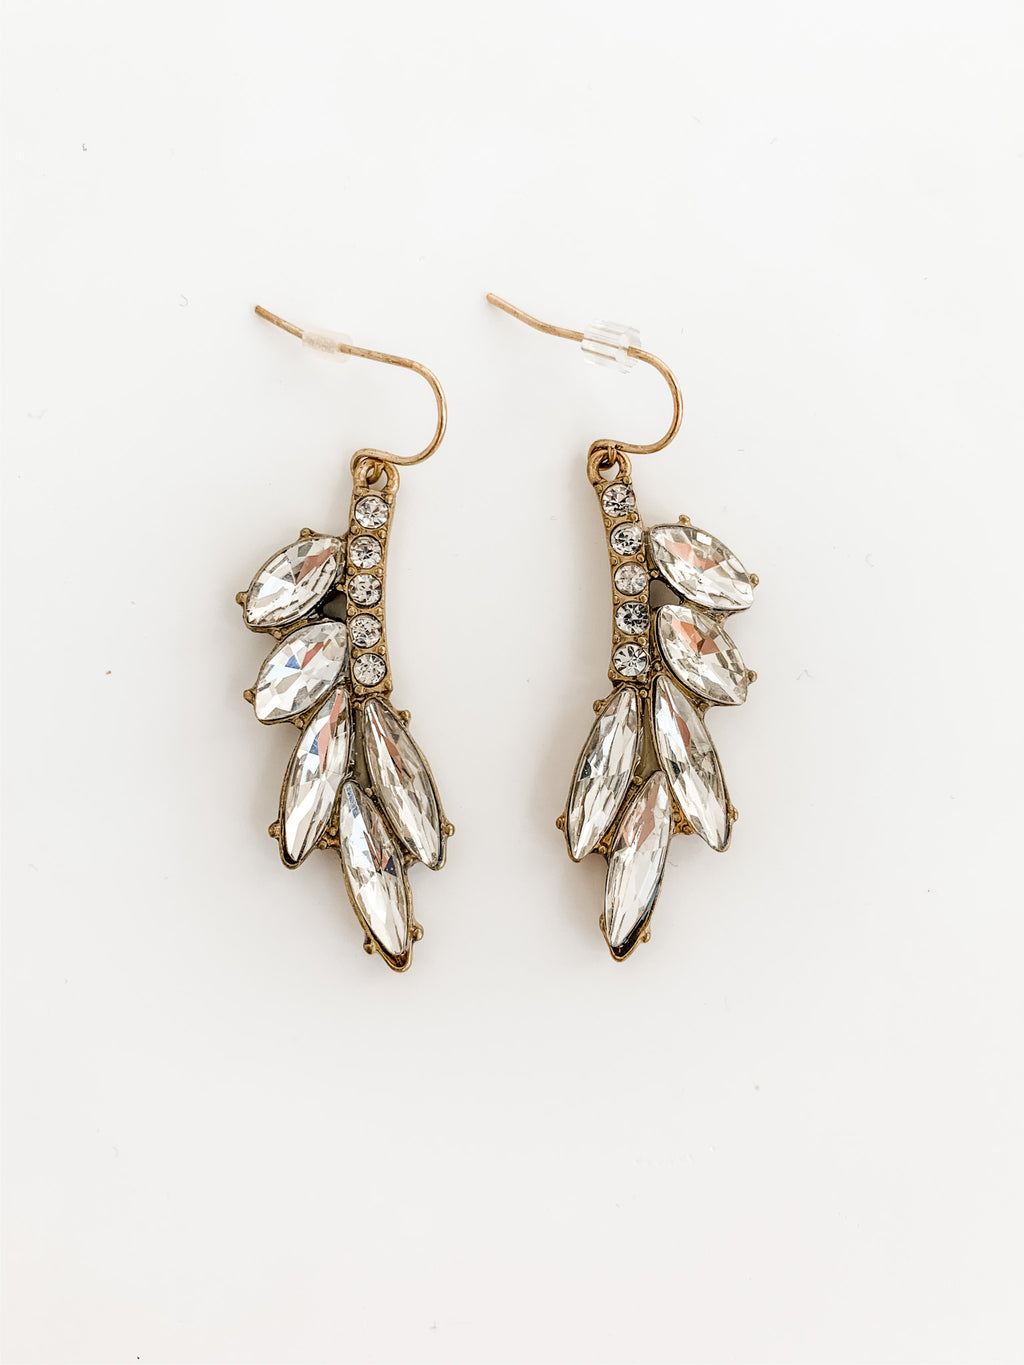 EVELYN RETRO WINGED EARRINGS